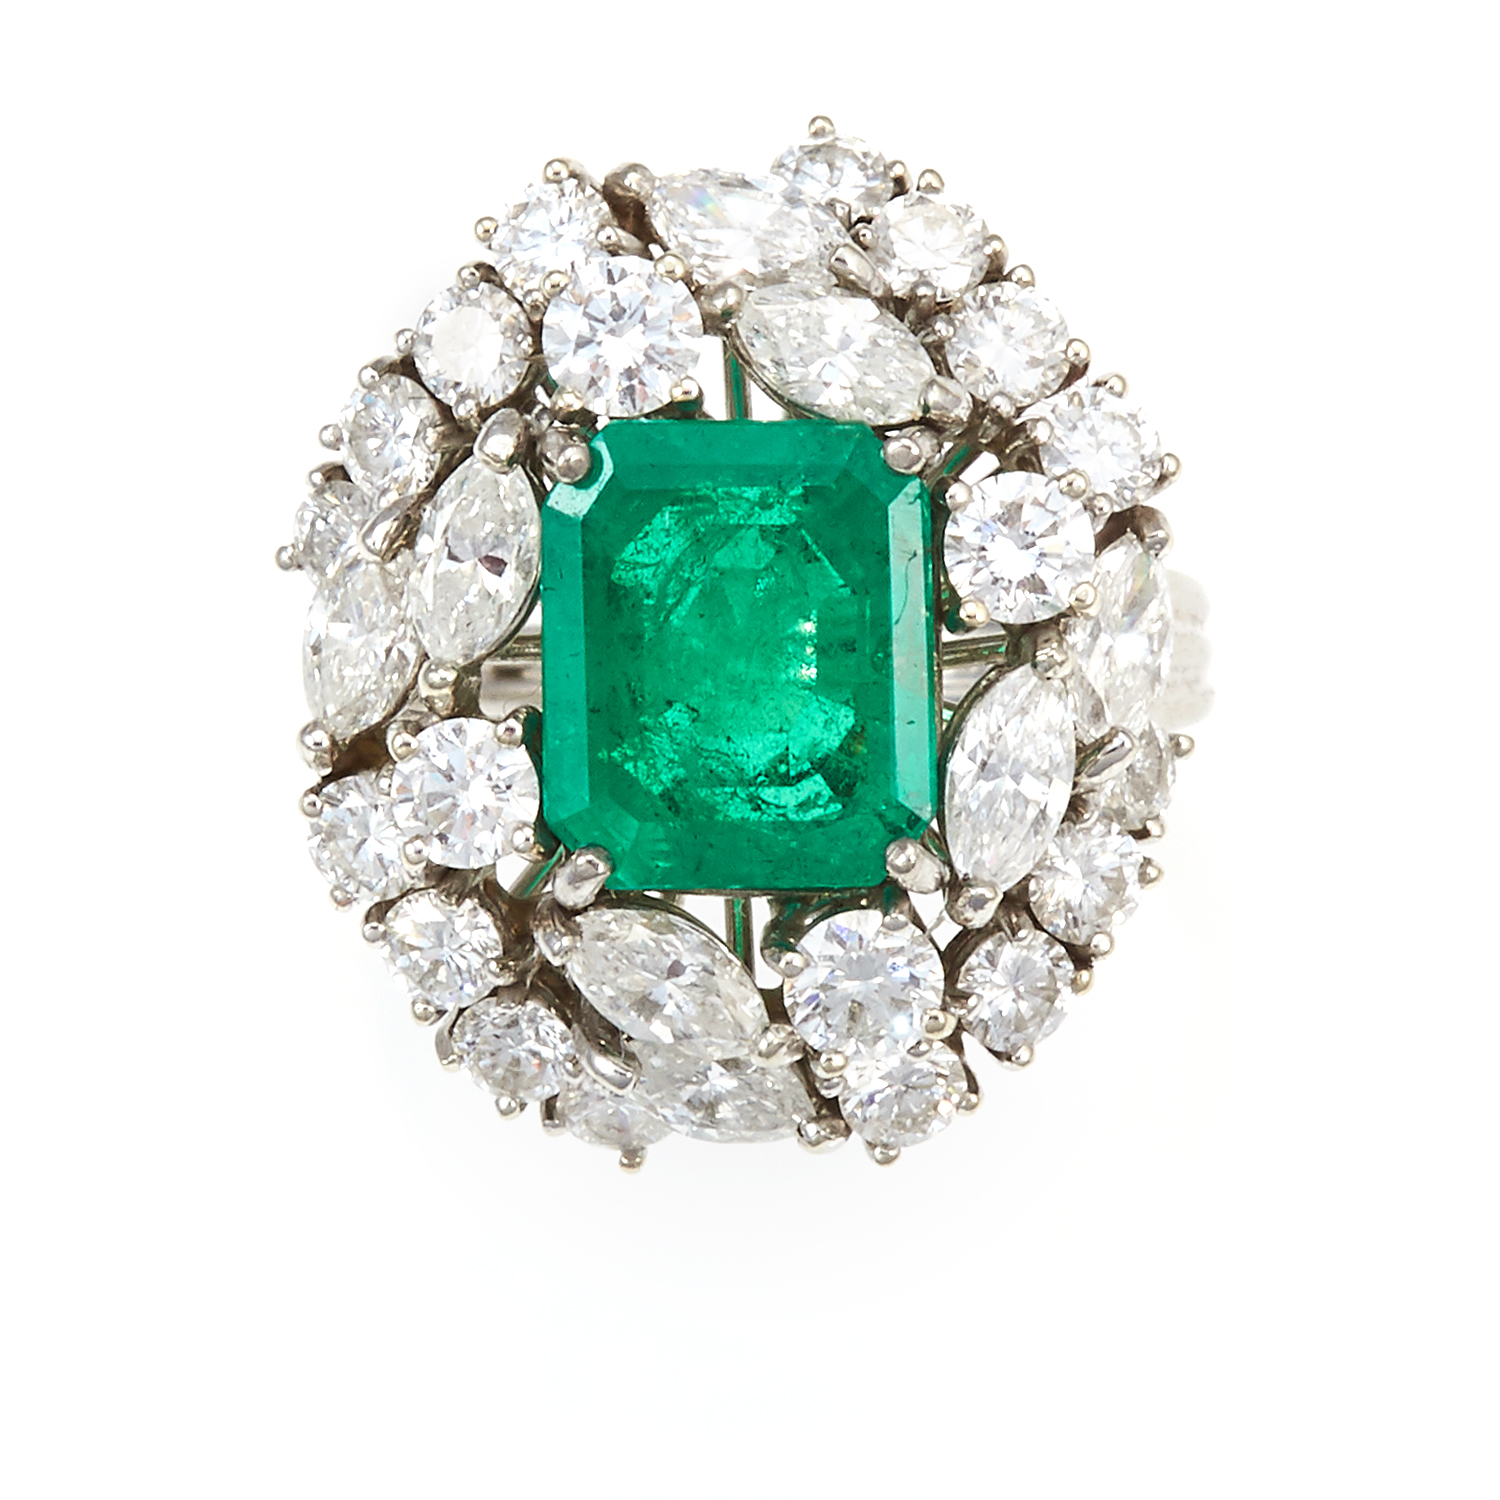 Los 24 - AN EMERALD AND DIAMOND DRESS RING in 18ct white gold, the step cut emerald of 3.25 carats